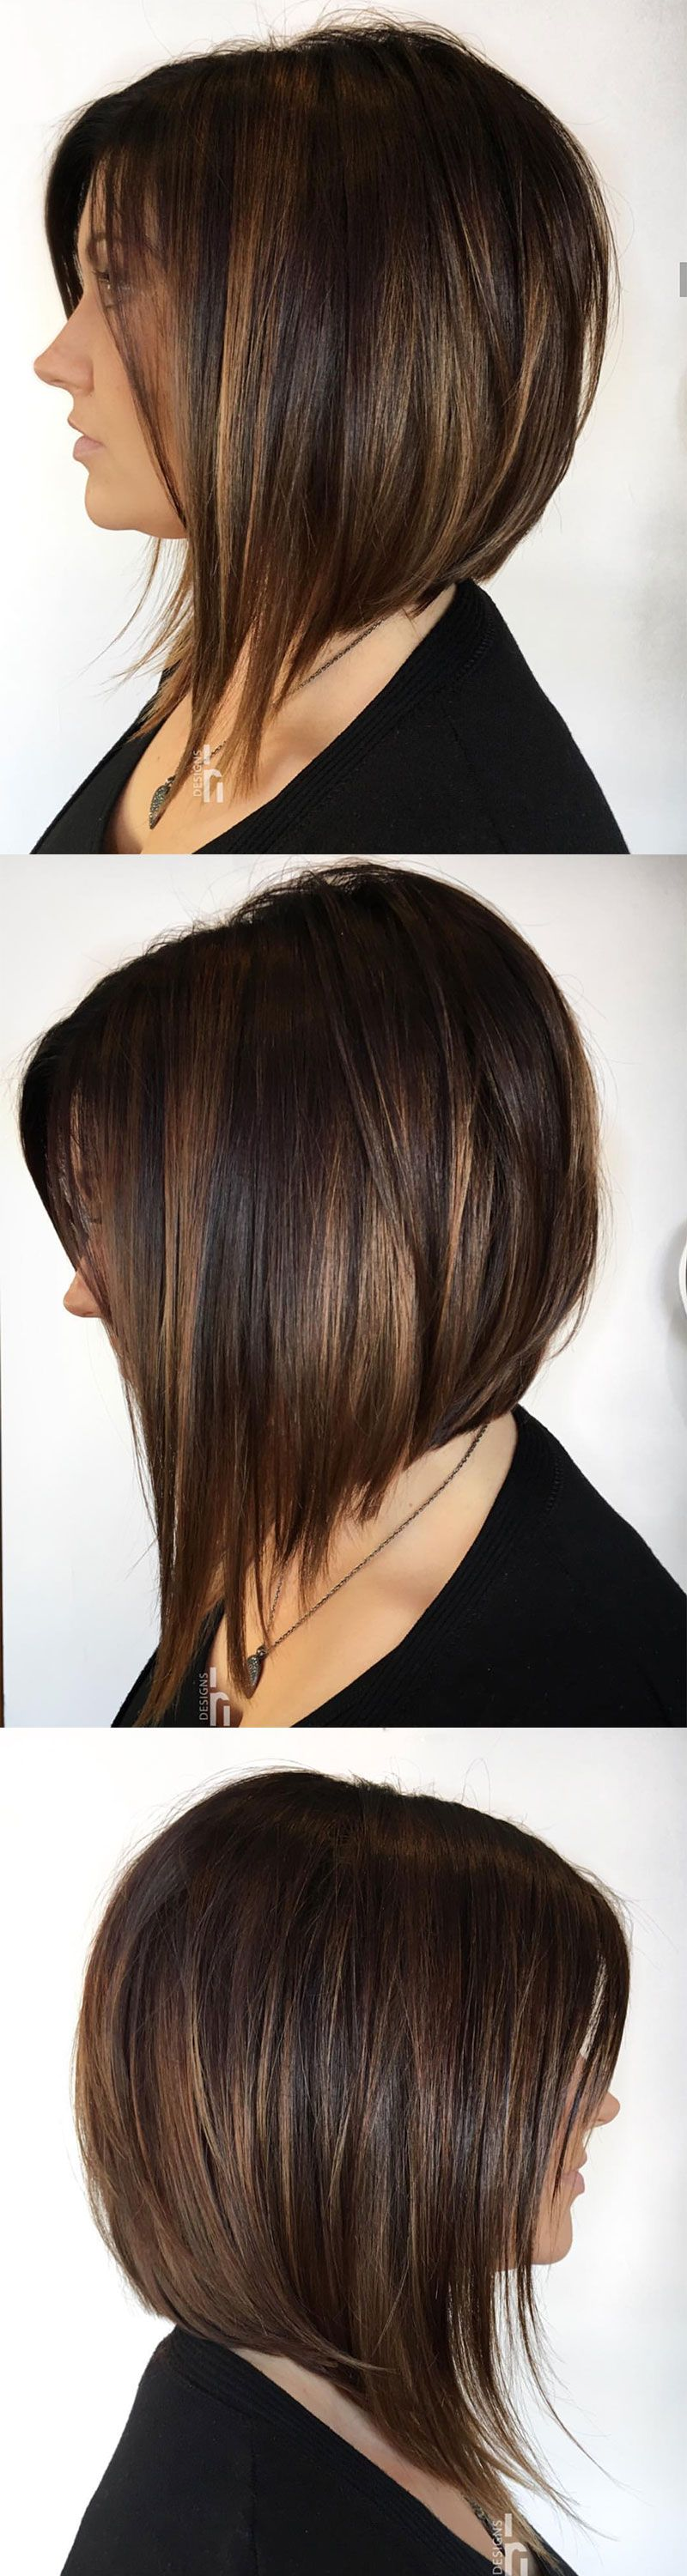 Long Angled Inverted Bob For When Pixie Grows Out Headrushdesigns Hair Styles Inverted Bob Hairstyles Long Bob Hairstyles